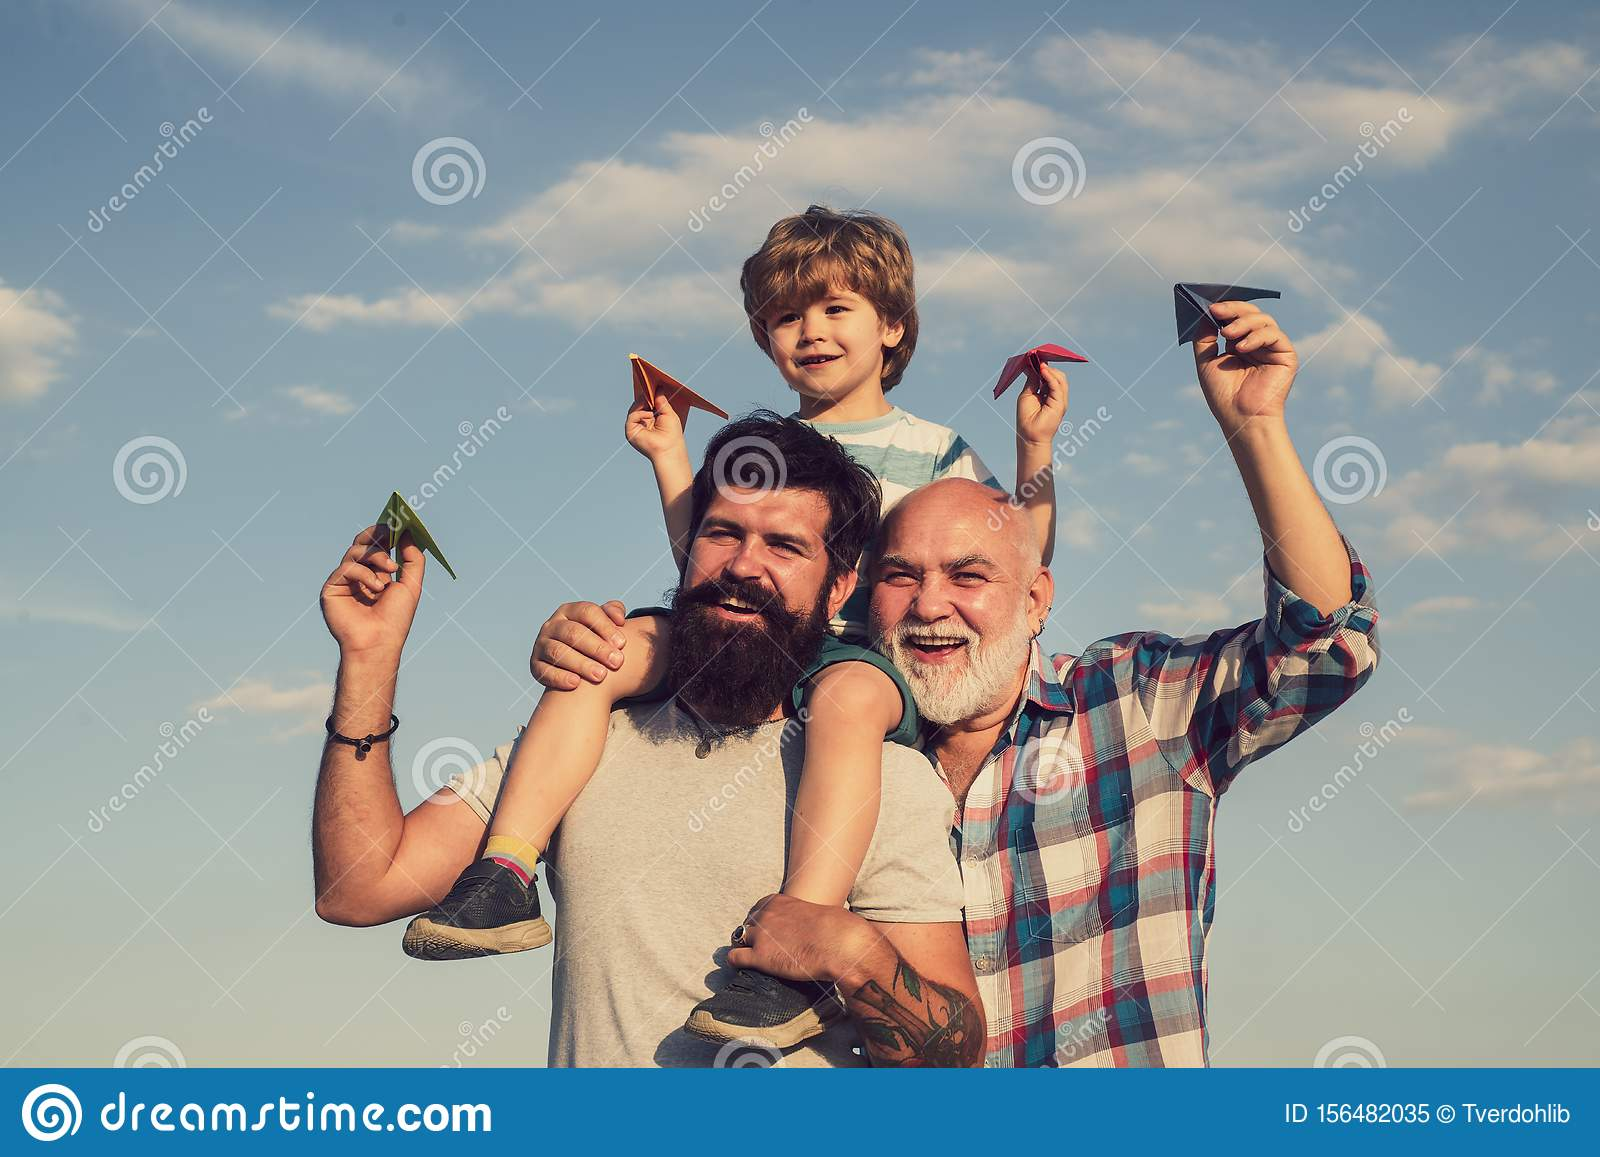 Child pilot aviator with paper airplane dreams of traveling. Dream of flying. Cute son with dad playing outdoor. Father